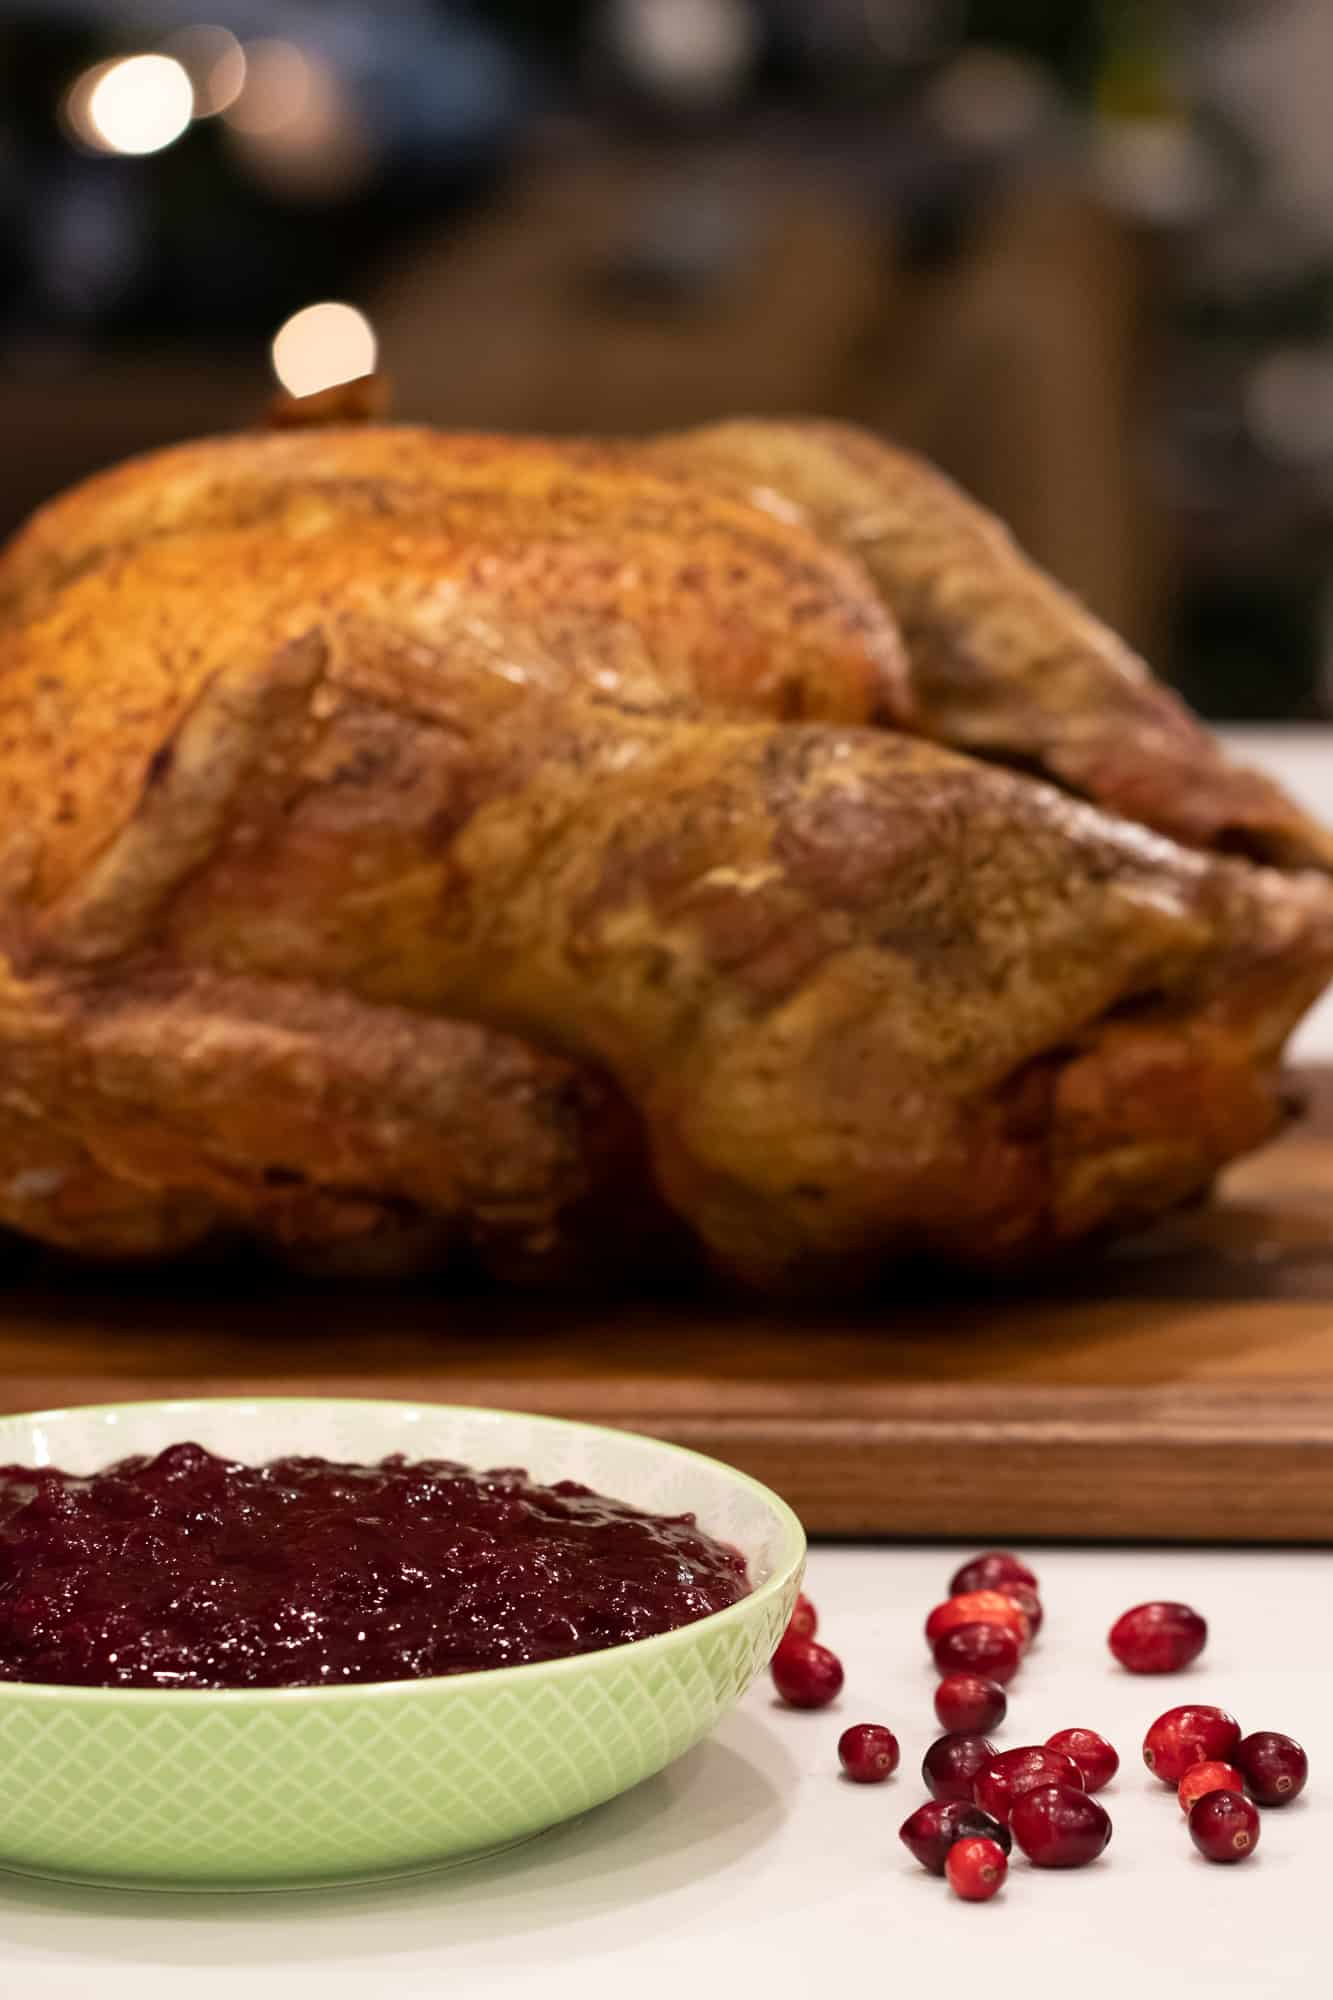 The cranberry sauce is great with turkey